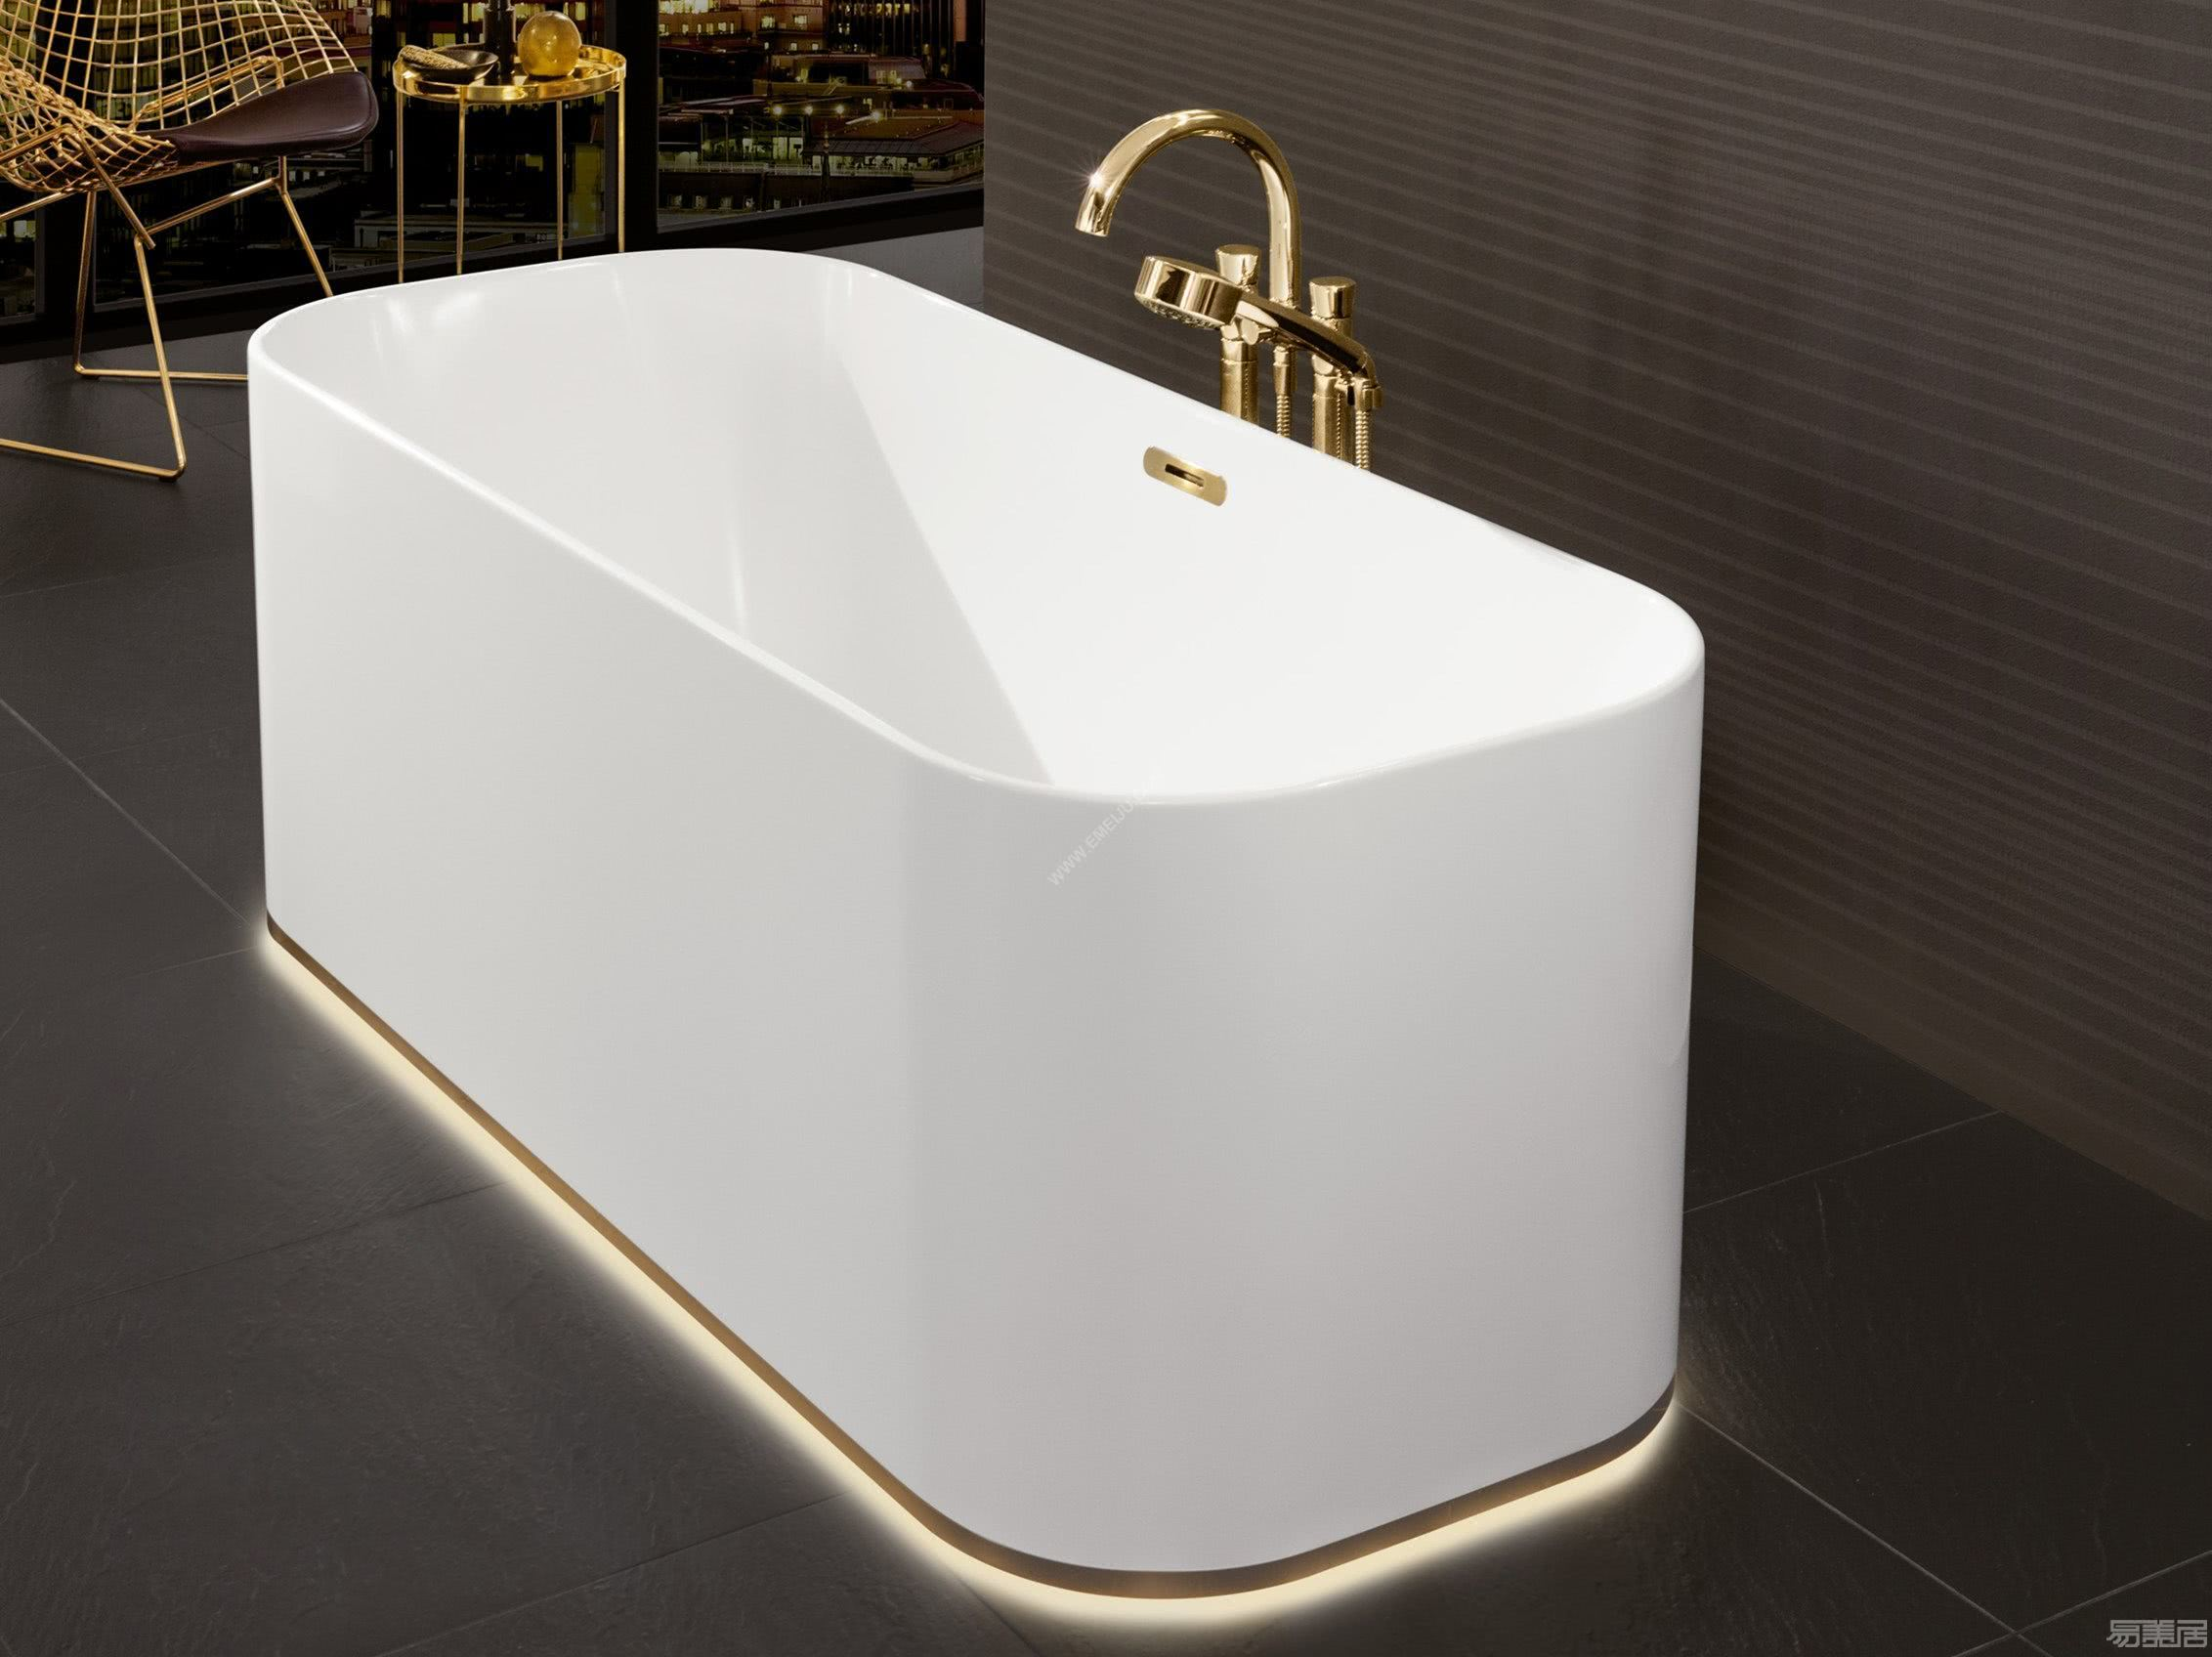 FINION-Freestanding-bathtub-Villeroy-Boch-296267-rel37d1cbc8.jpg